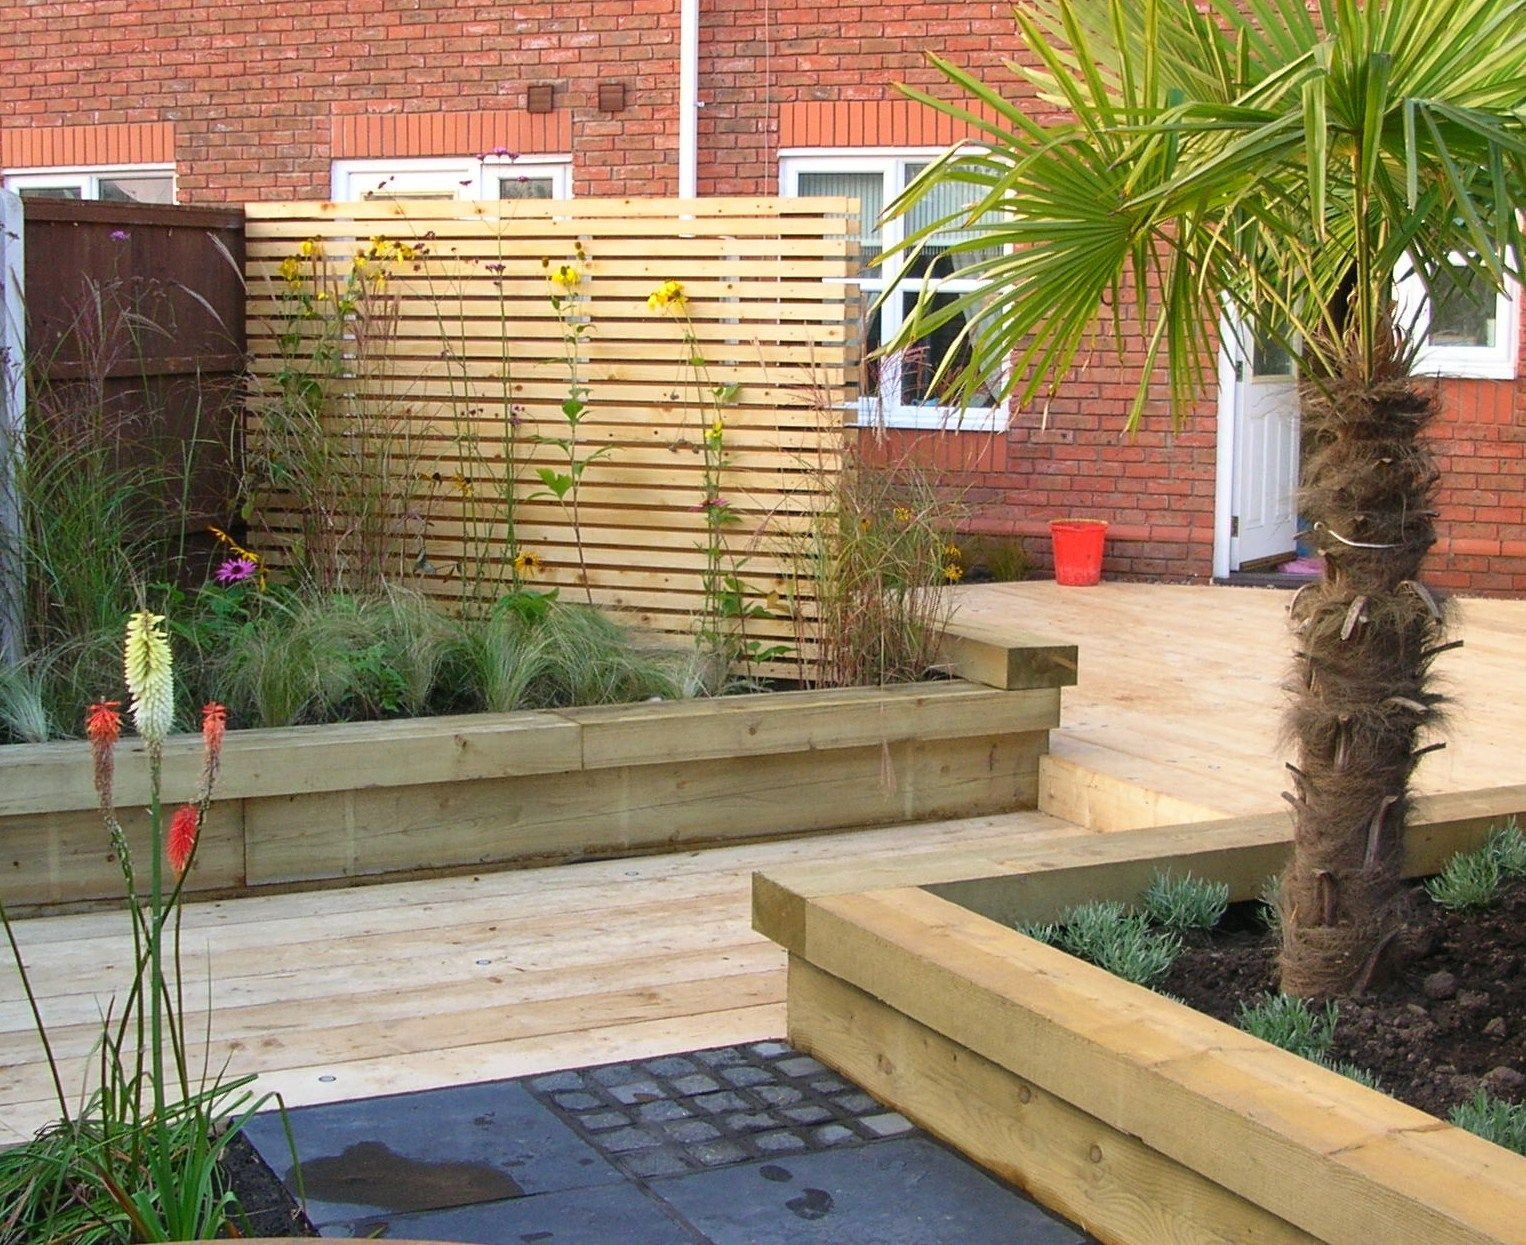 raised beds uk - Google Search (With images) | Raised beds ...